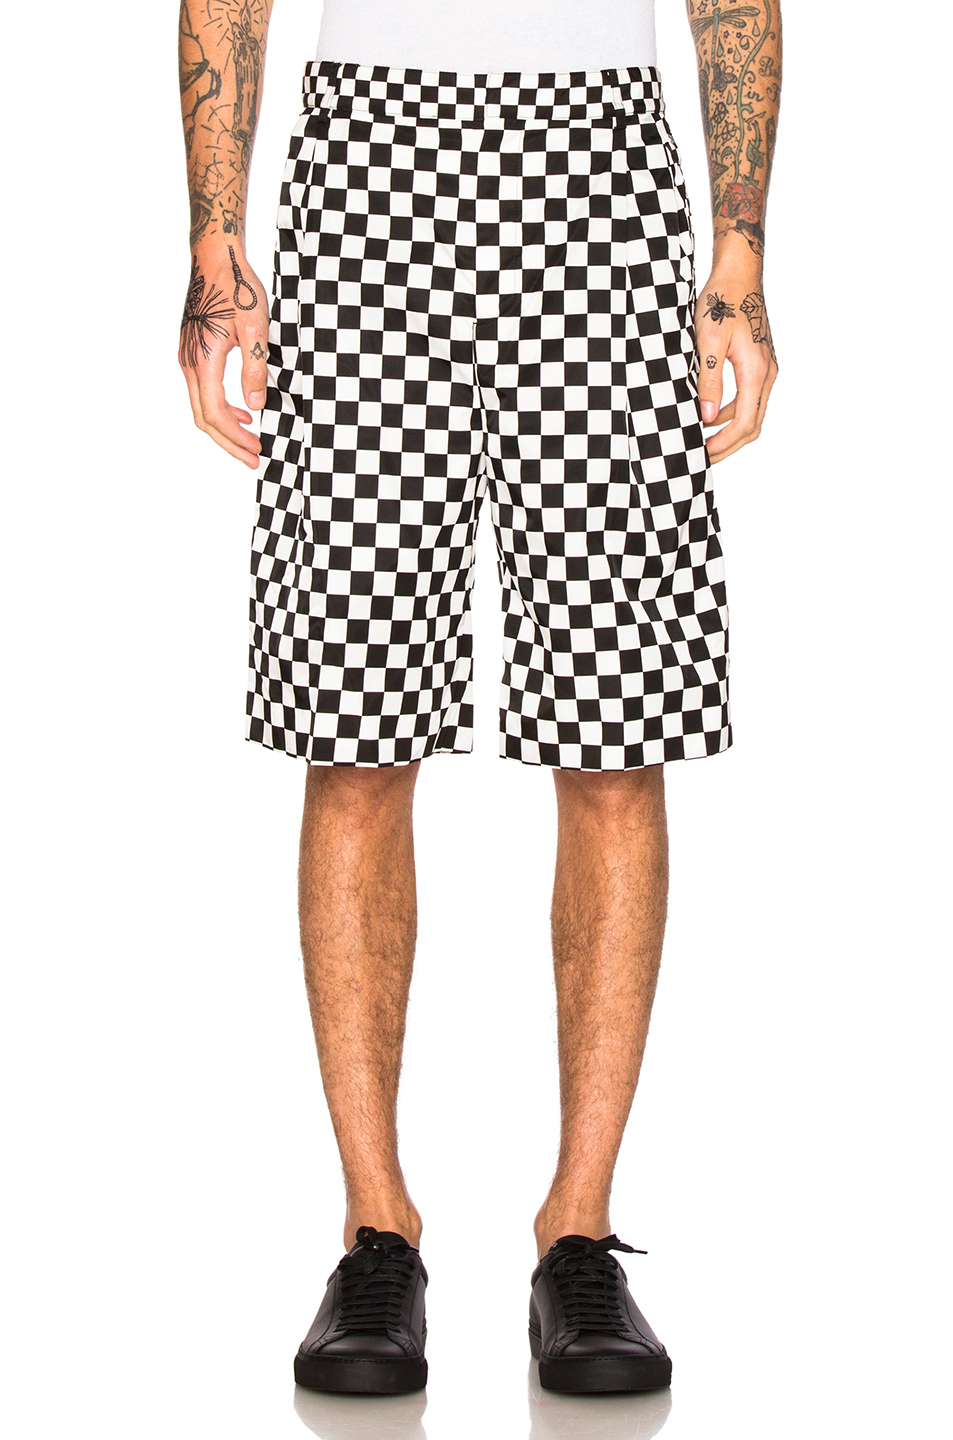 Givenchy Checkerboard Print Shorts in Black,White,Checkered & Plaid